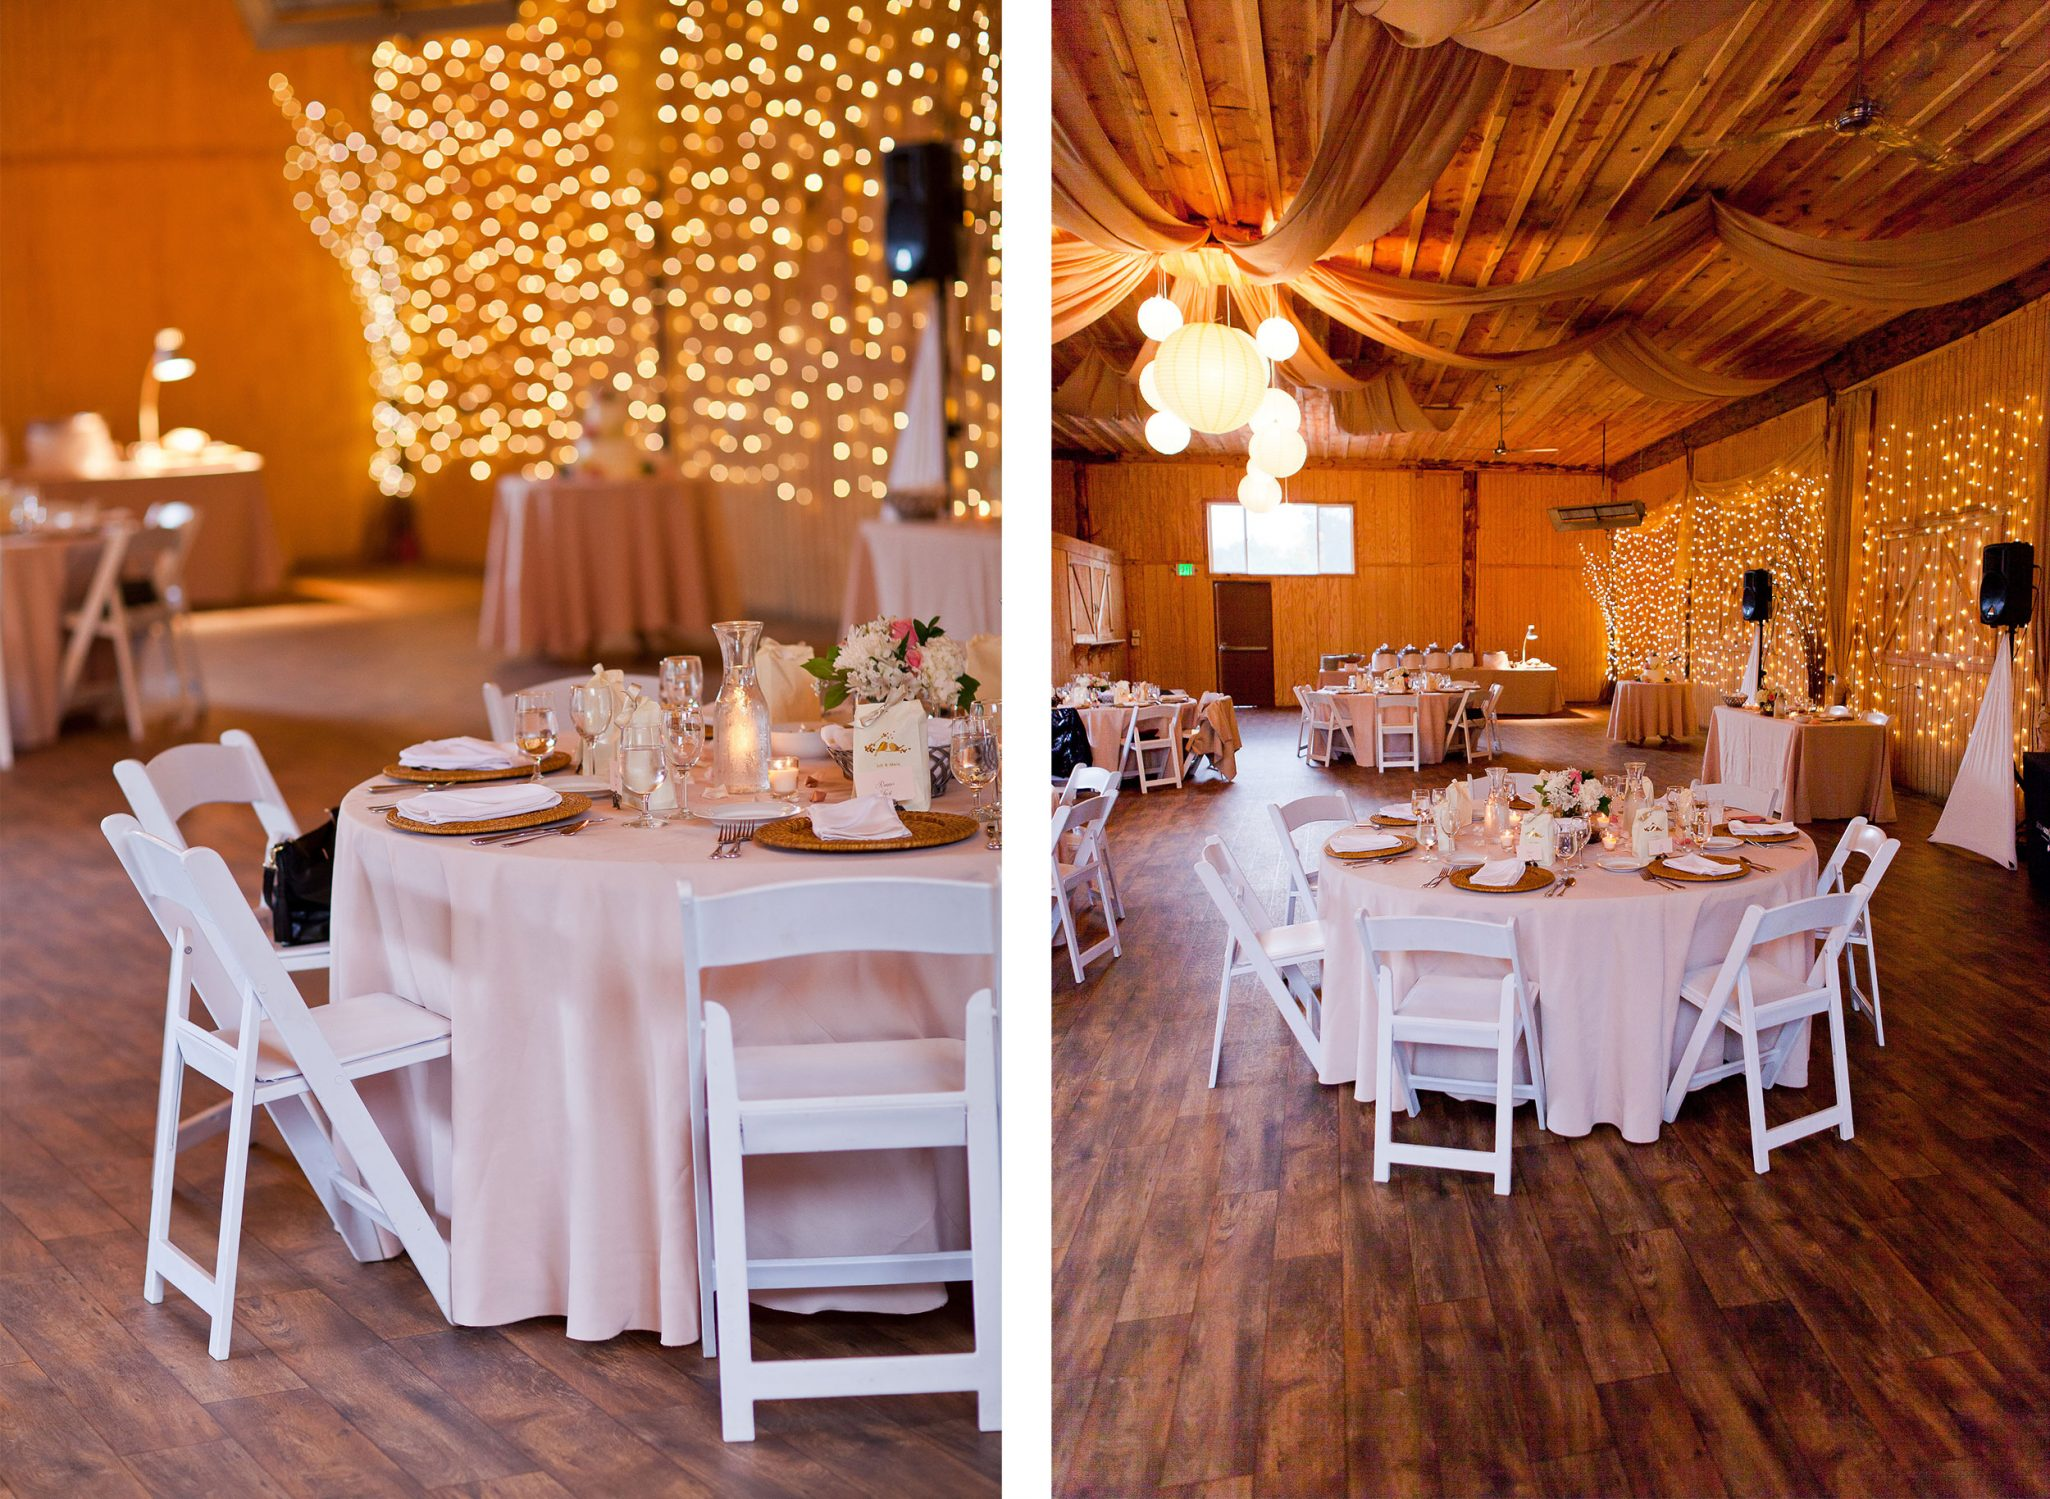 Wedding Reception at River Bend Ranch in Durango, Colorado